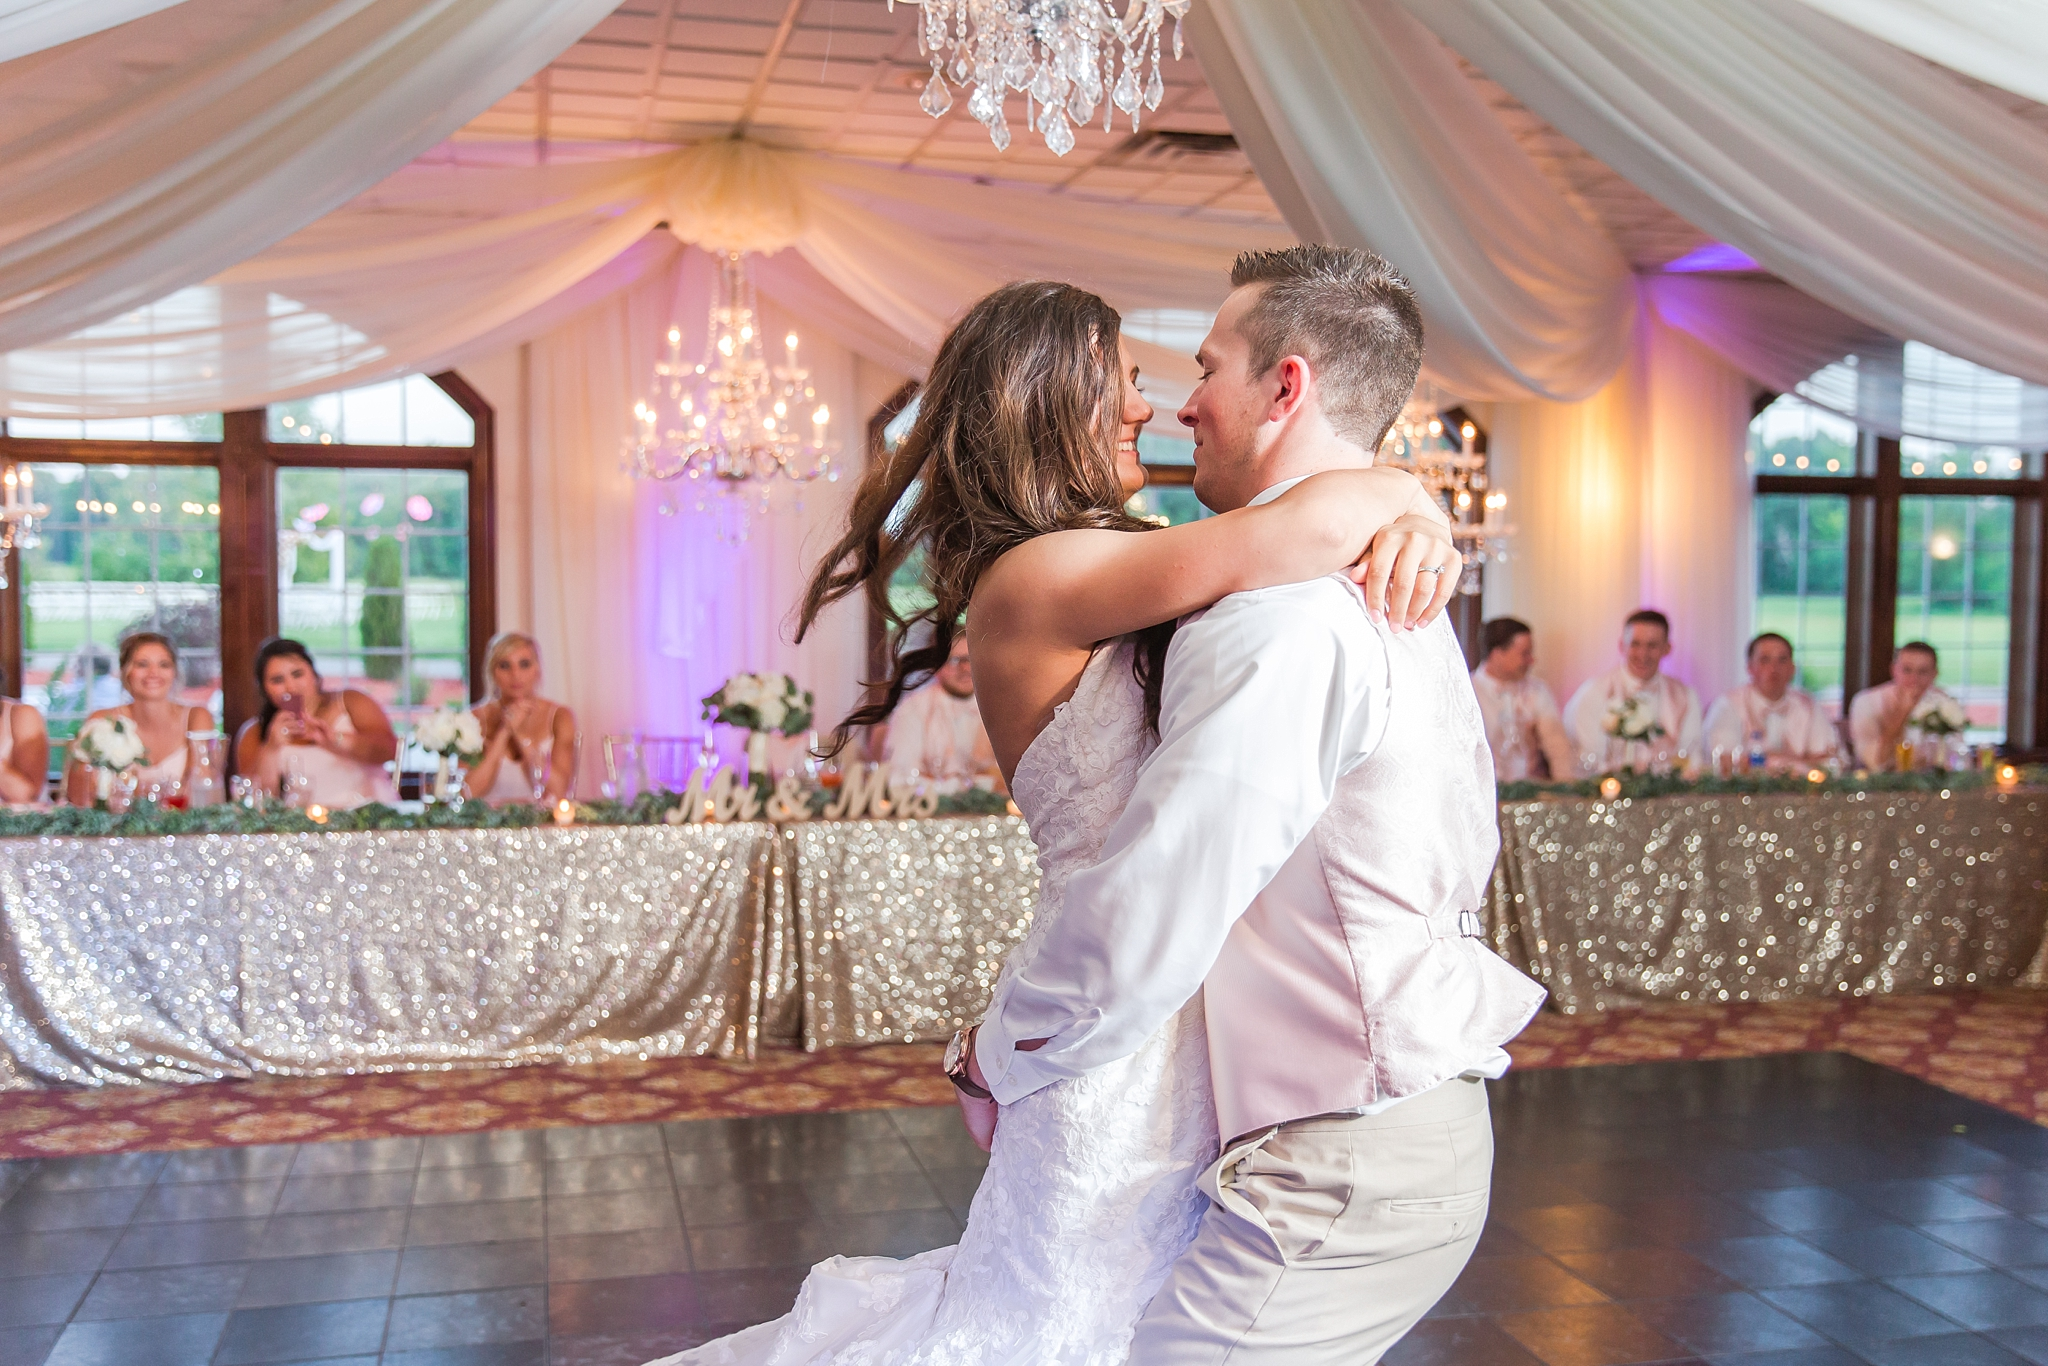 candid-timeless-wedding-photos-at-the-captains-club-in-grand-blanc-michigan-by-courtney-carolyn-photography_0098.jpg